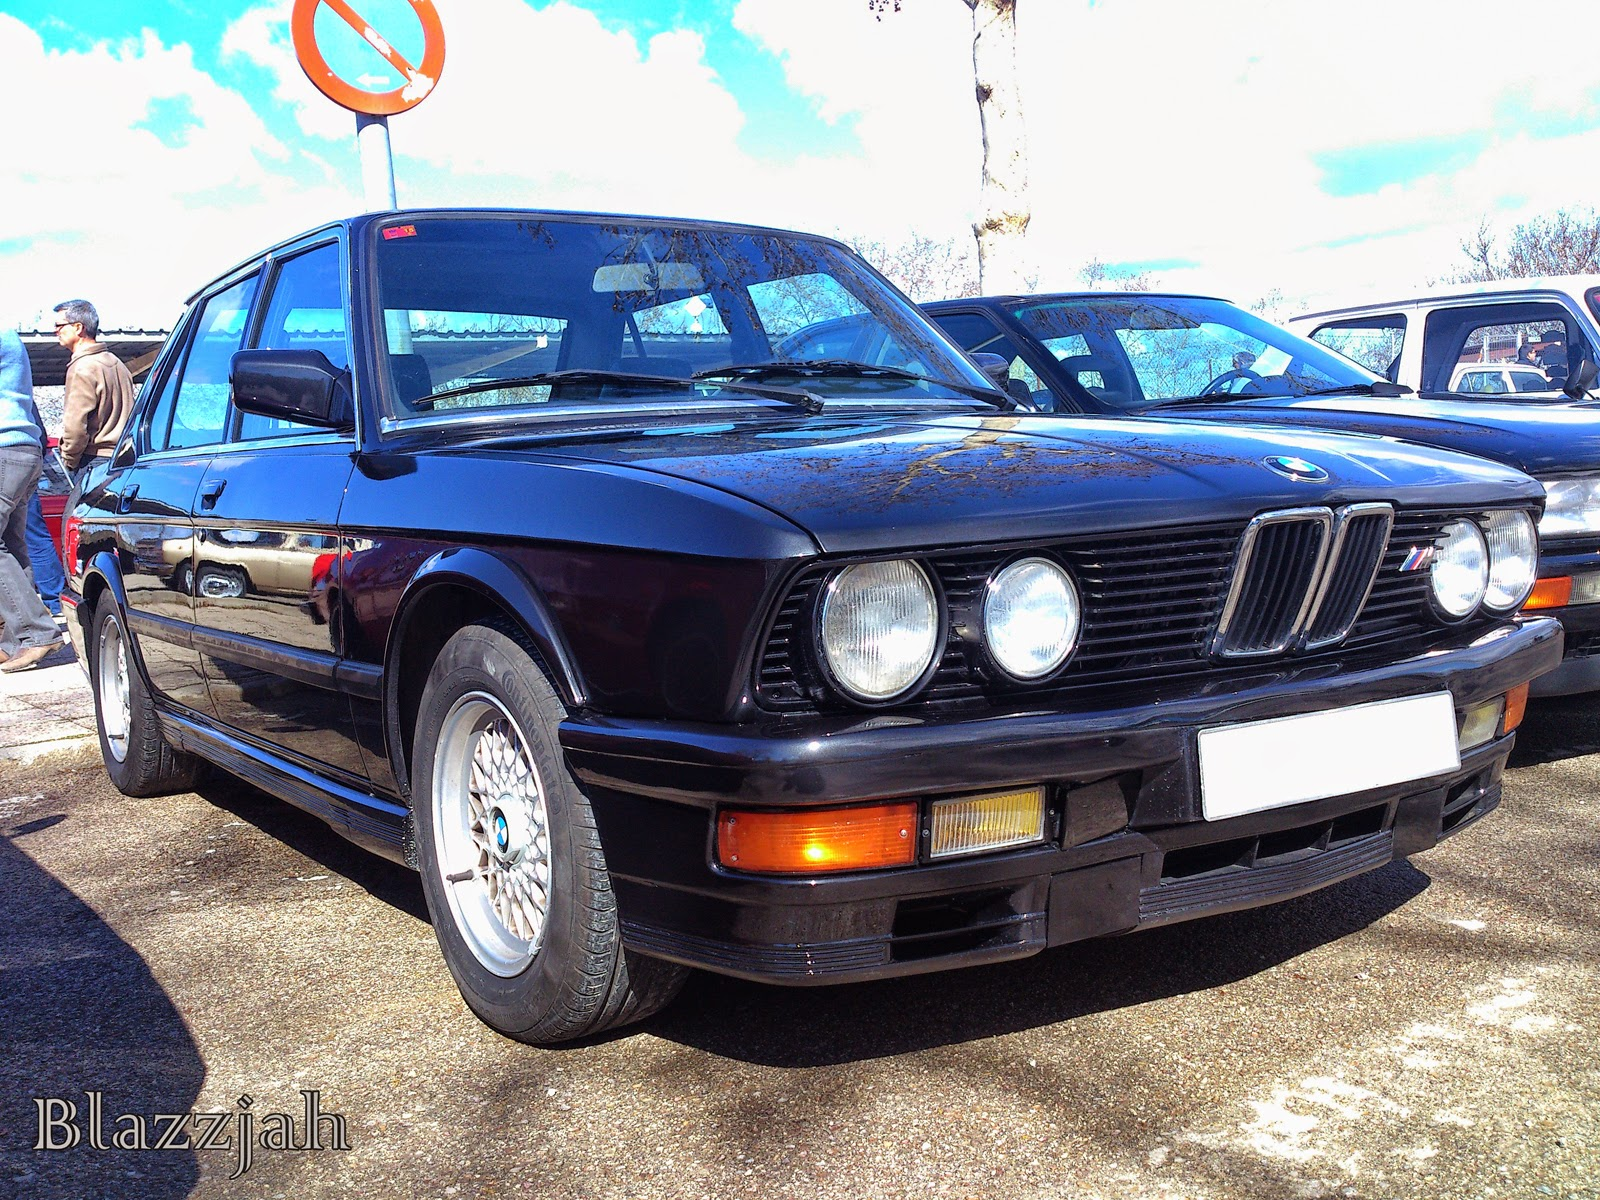 Wallpapers Luxury Cars News Bmw E30 Hd Backgrounds 00137wl